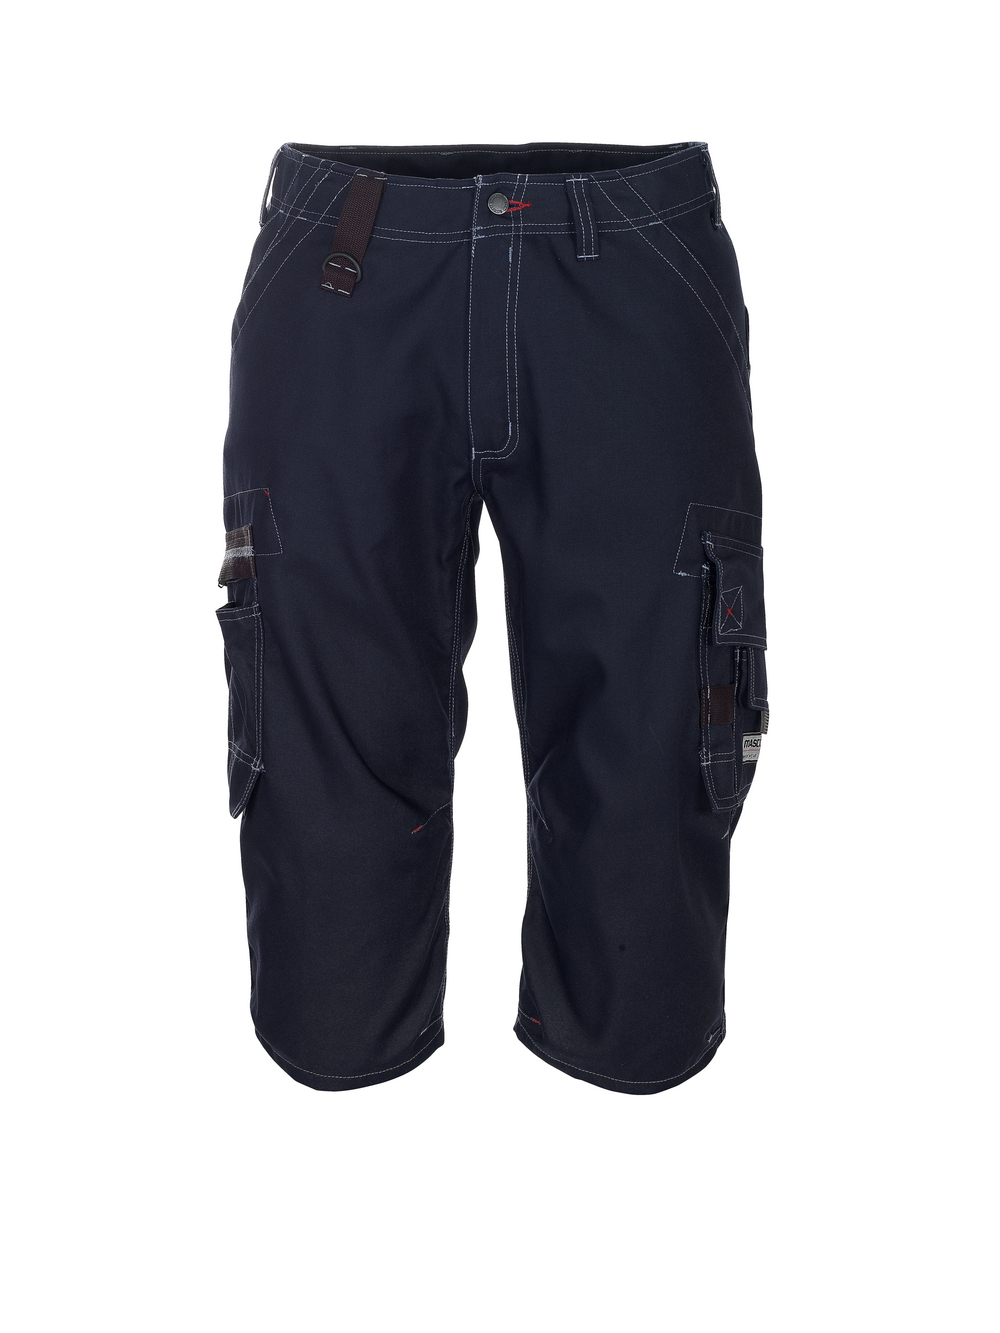 MASCOT LIMNOS 3/4 LENGTH TROUSERS